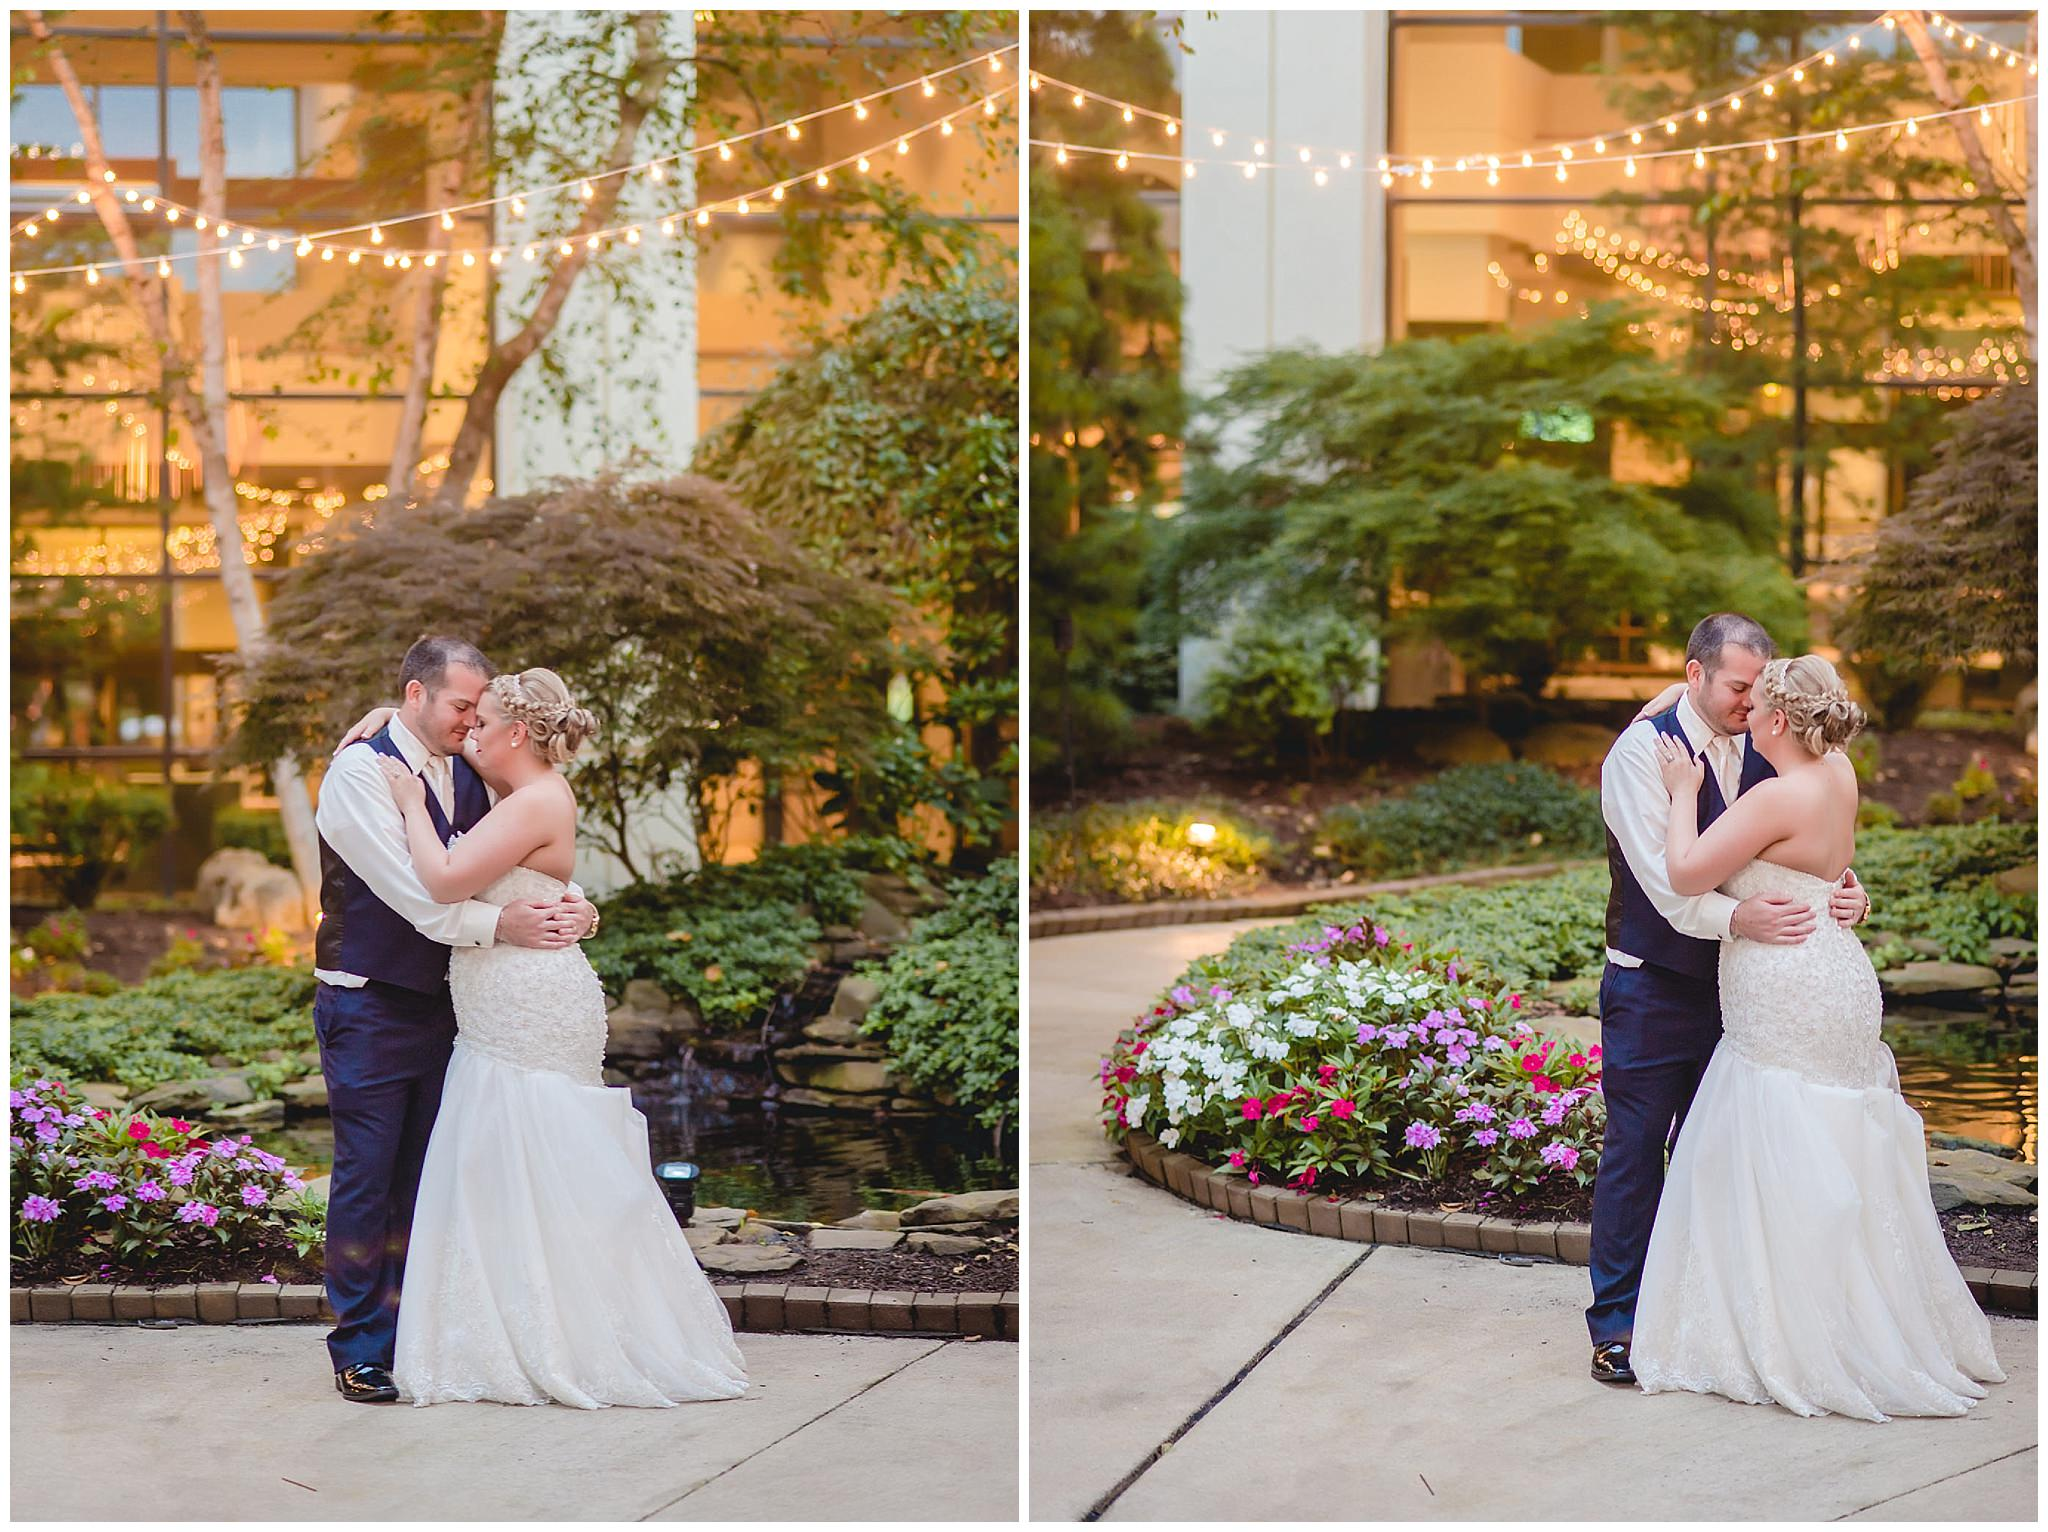 Bride & groom share a quiet moment at dusk in the courtyard of the Pittsburgh Airport Marriott